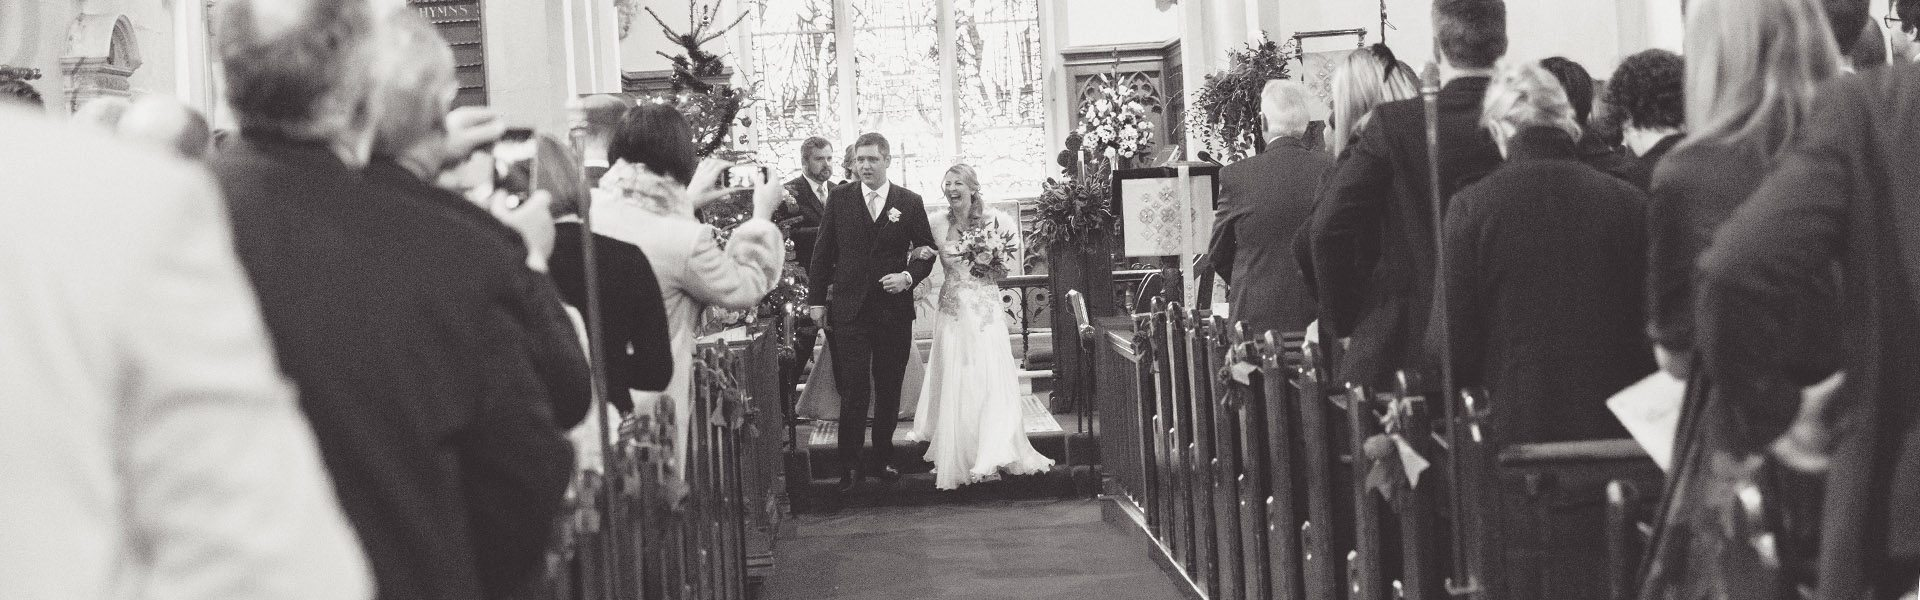 Cultra Manor Wedding by Ricky Parker Photography